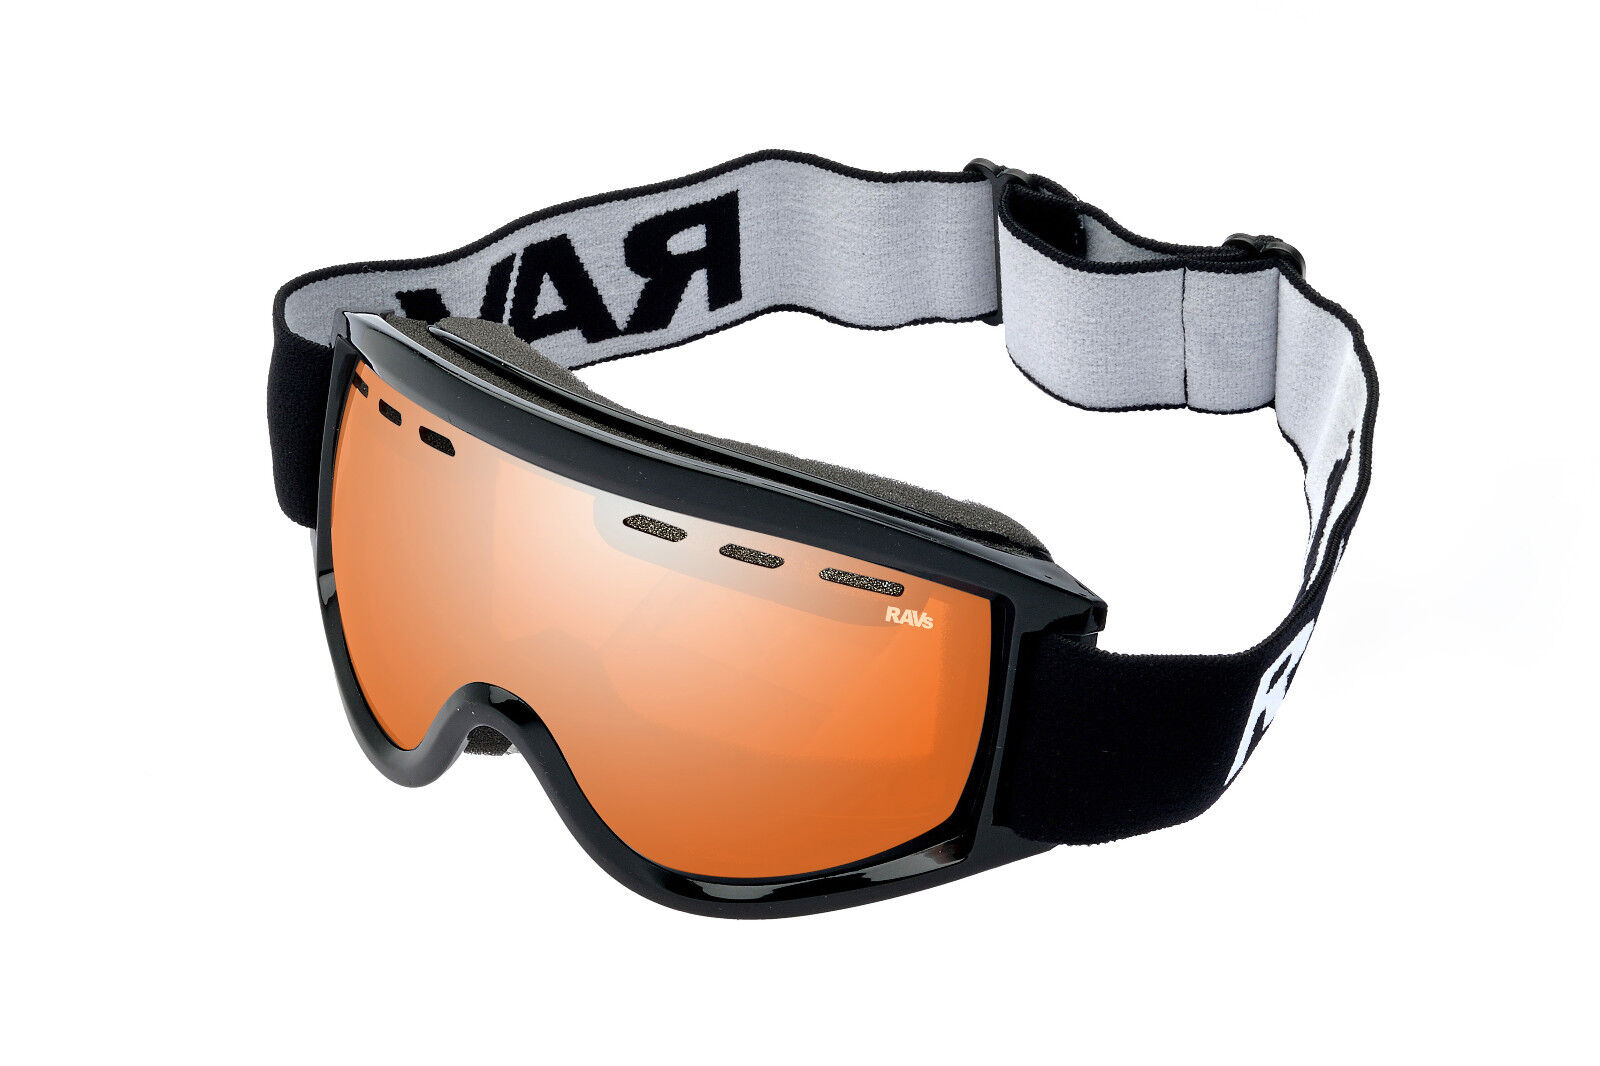 Ravs Unisex Ski Goggles and Snowboard Skiing for all Weather Antifog